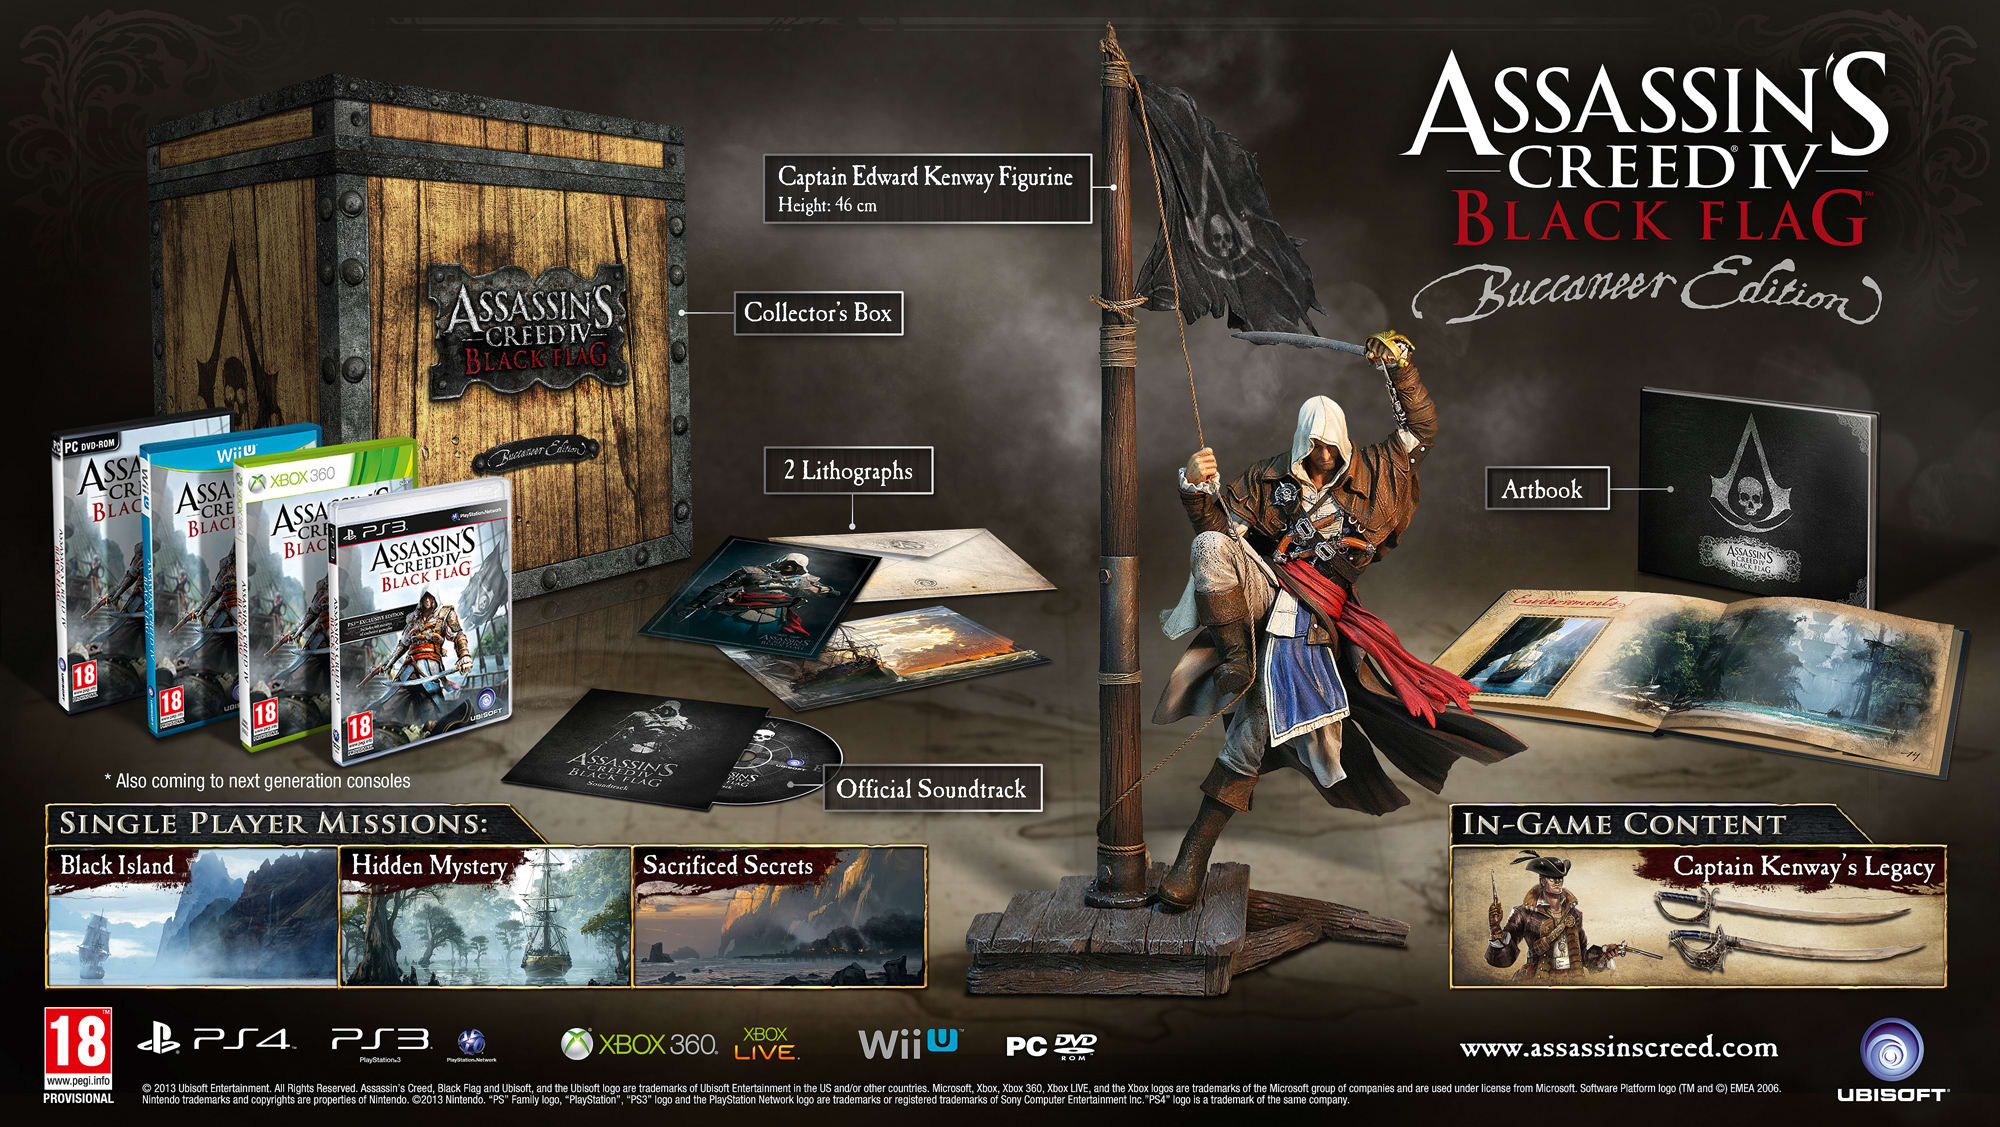 http://img.game.co.uk/images/content/SpecialEditions/AC4BFBuccaneerEditionLarge.jpg